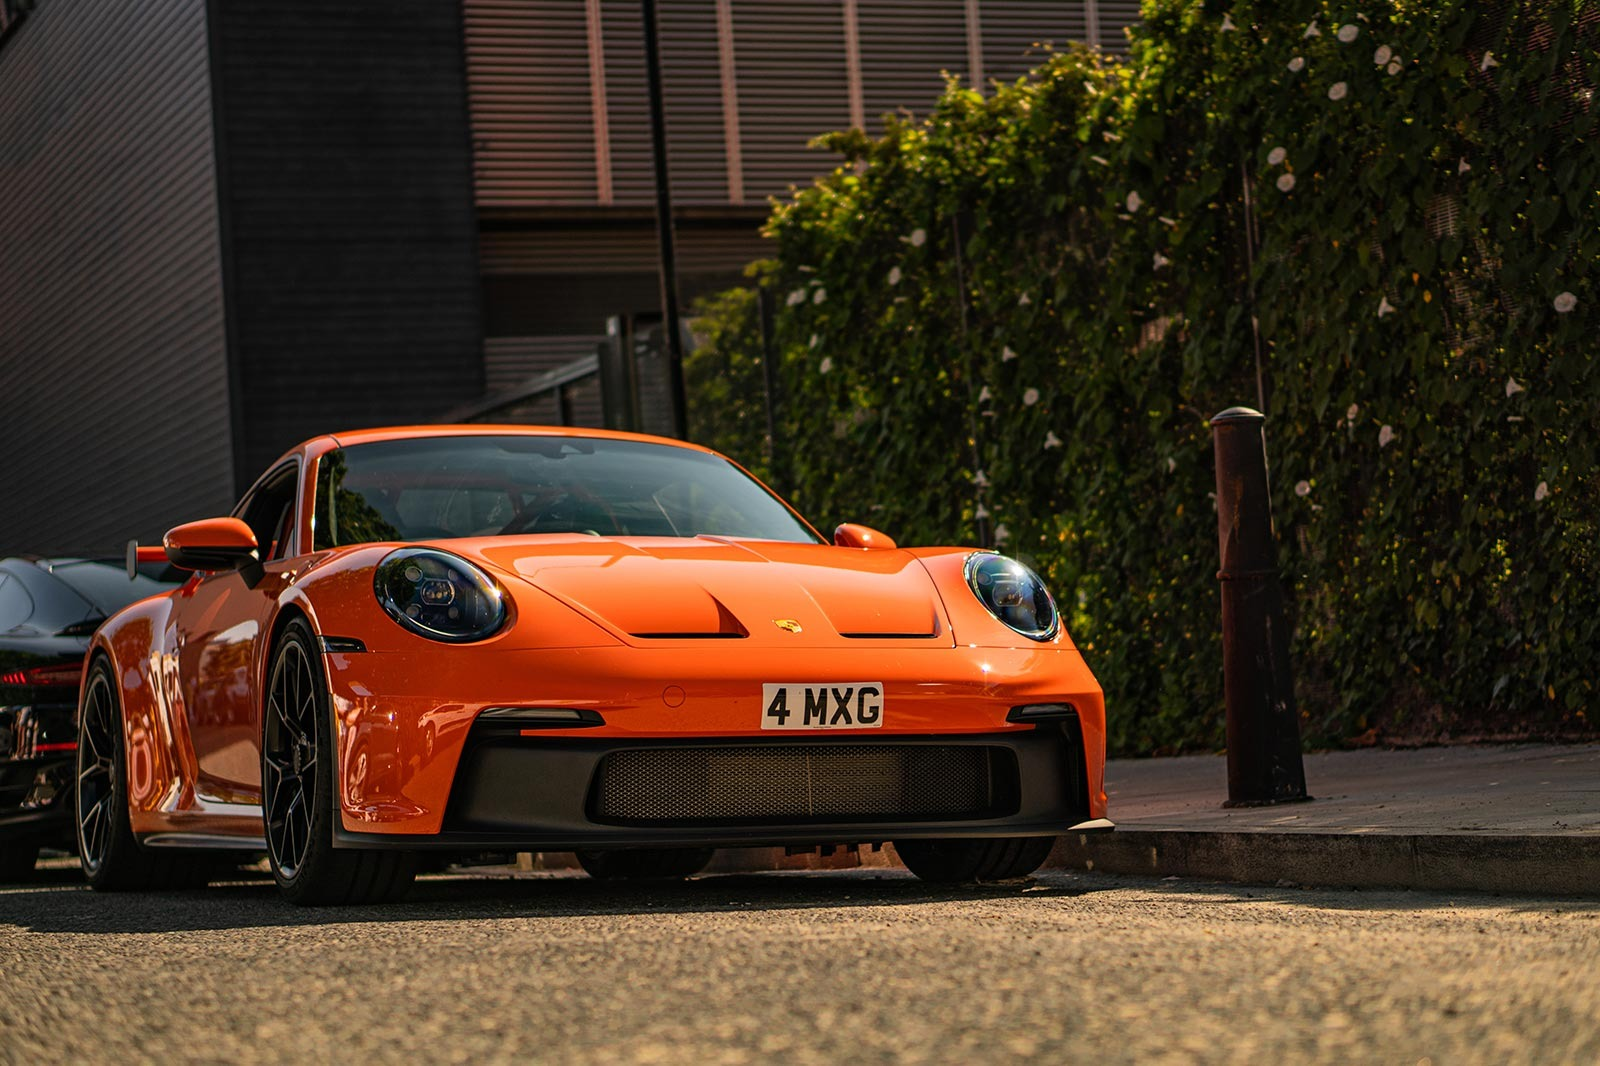 Porsche Club GB's July 'Out East' at Fish Island